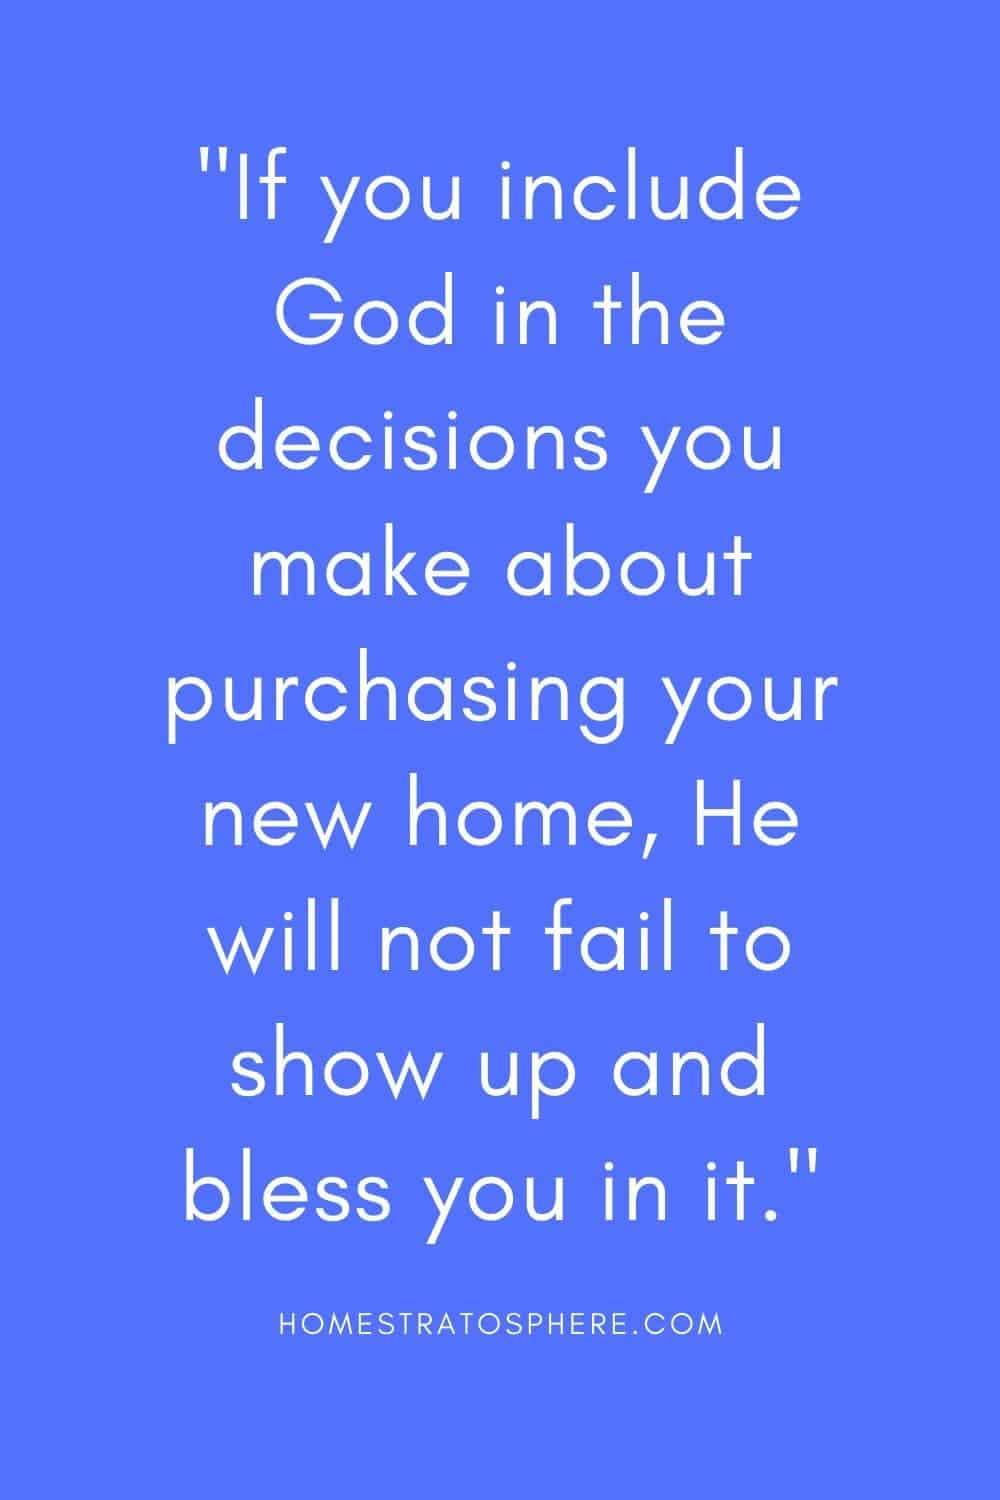 """If you include God in the decisions you make about purchasing your new home, He will not fail to show up and bless you in it."""